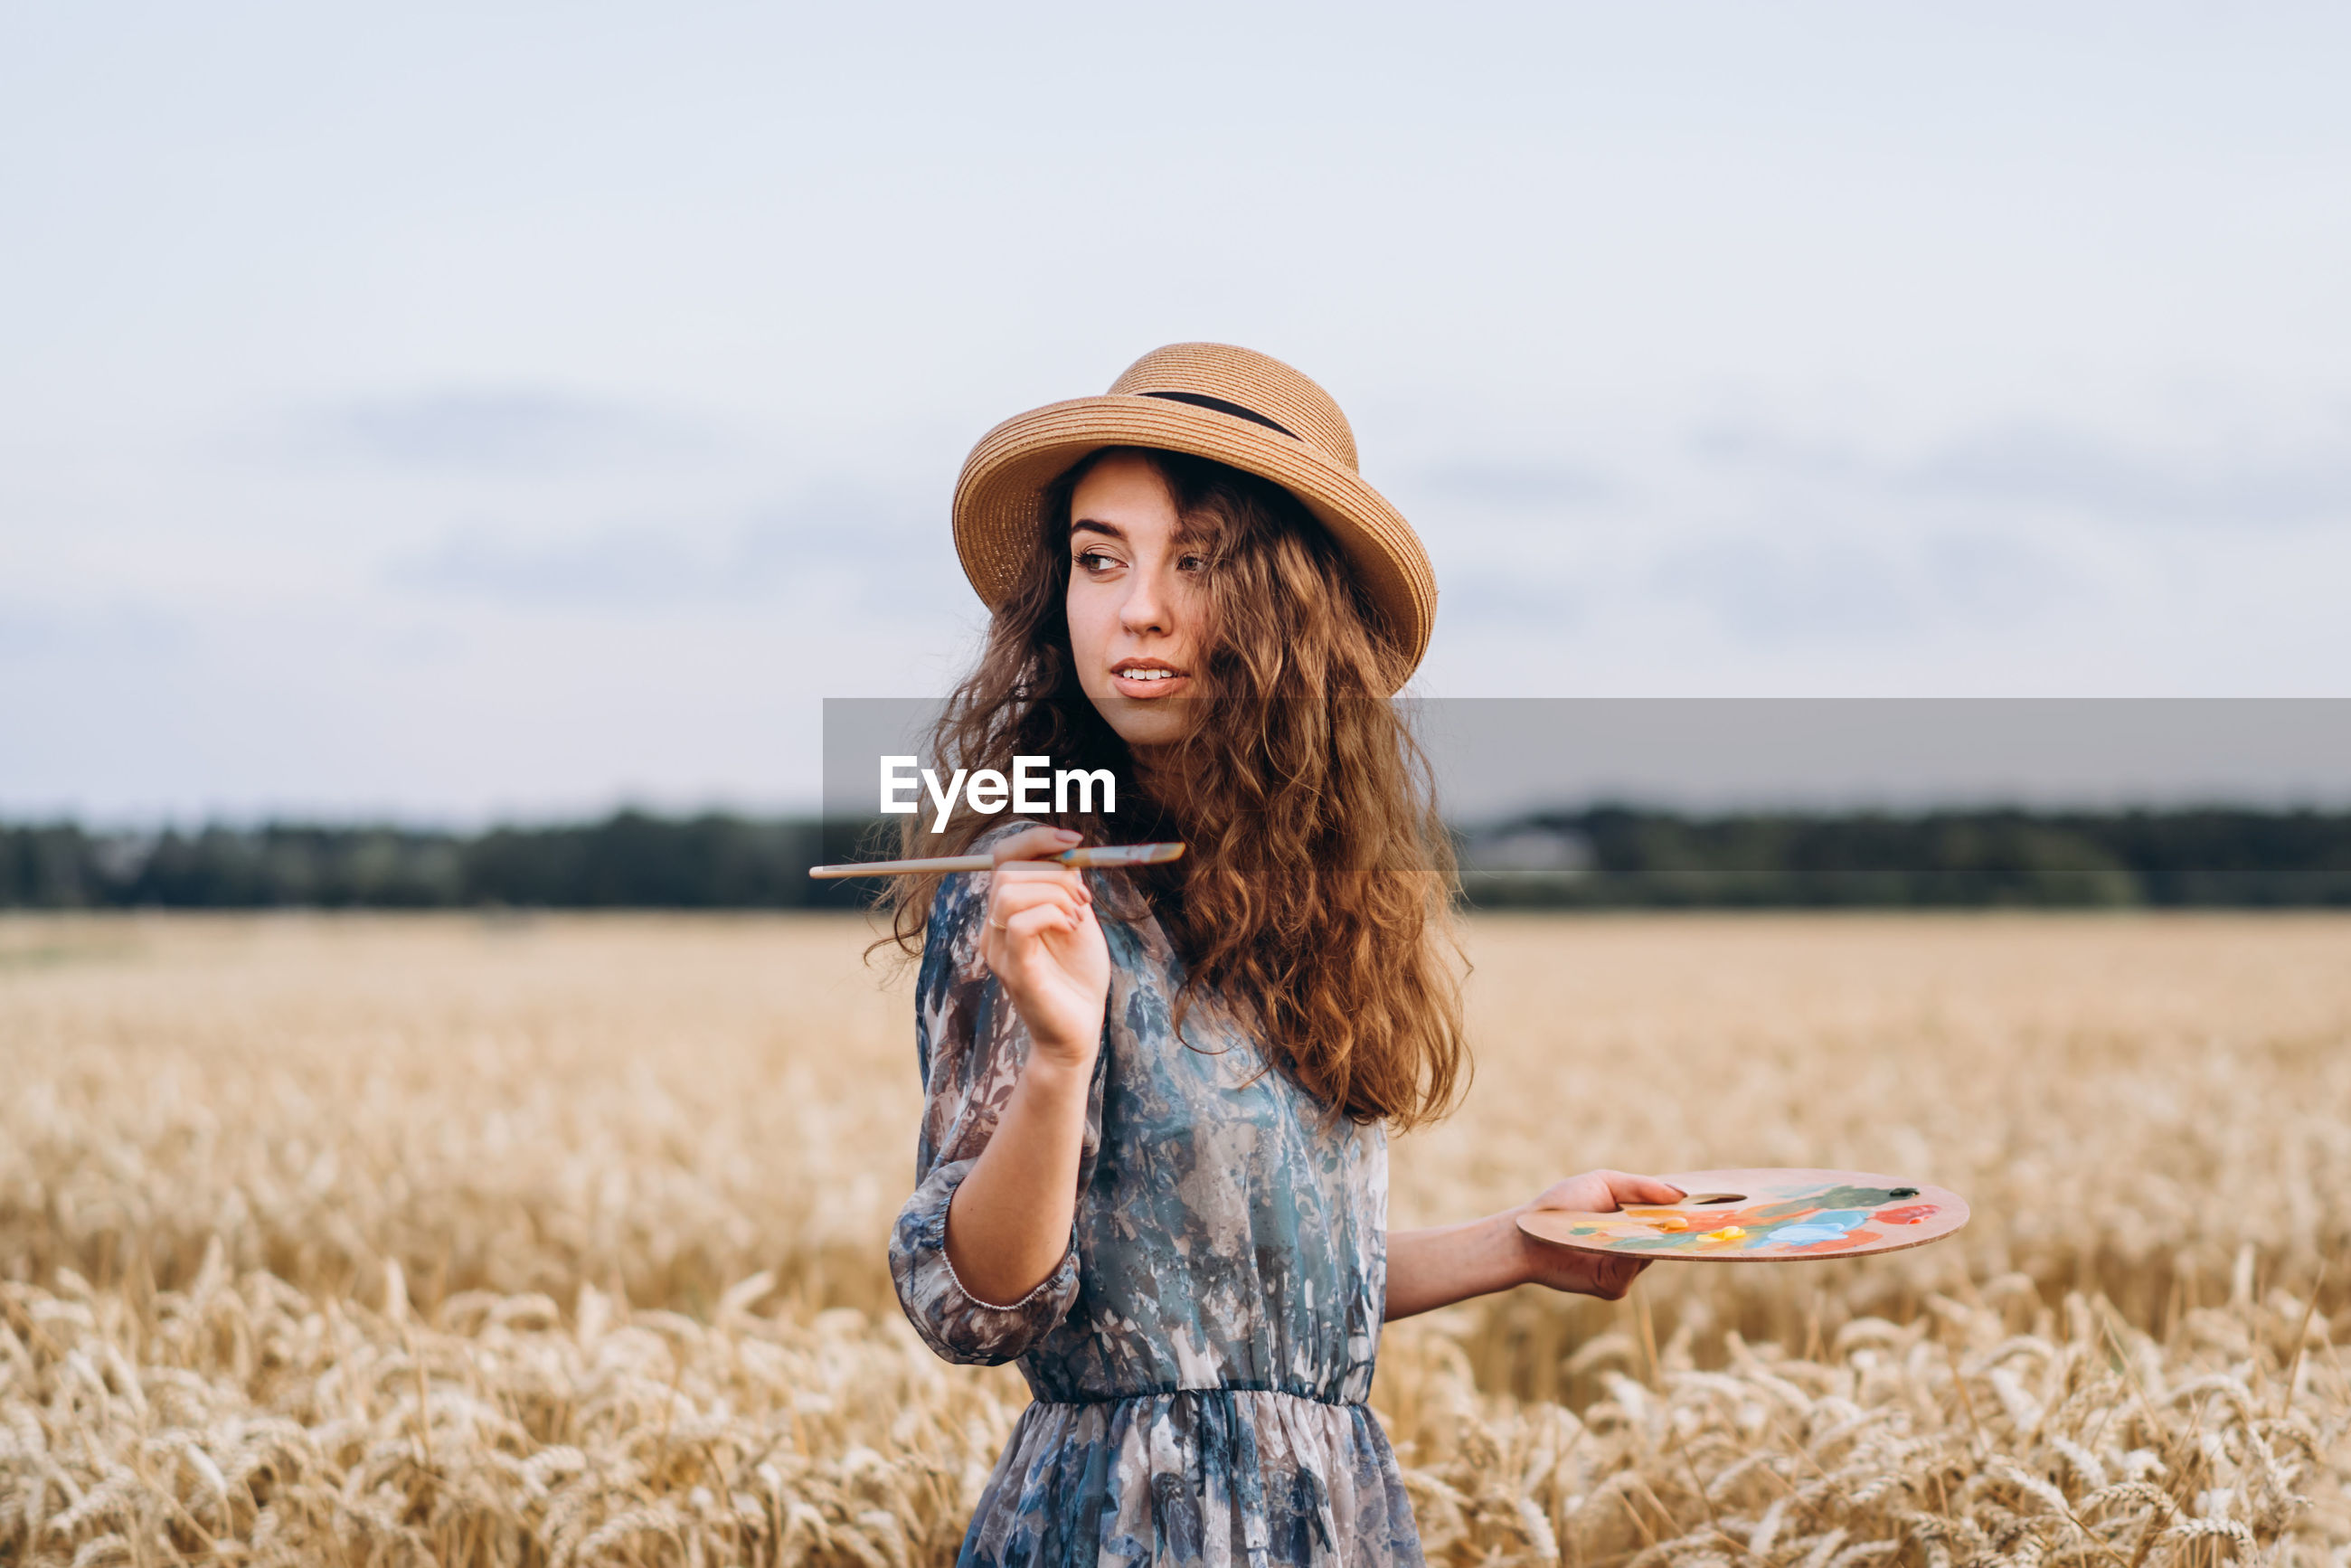 Young woman wearing hat while standing on field